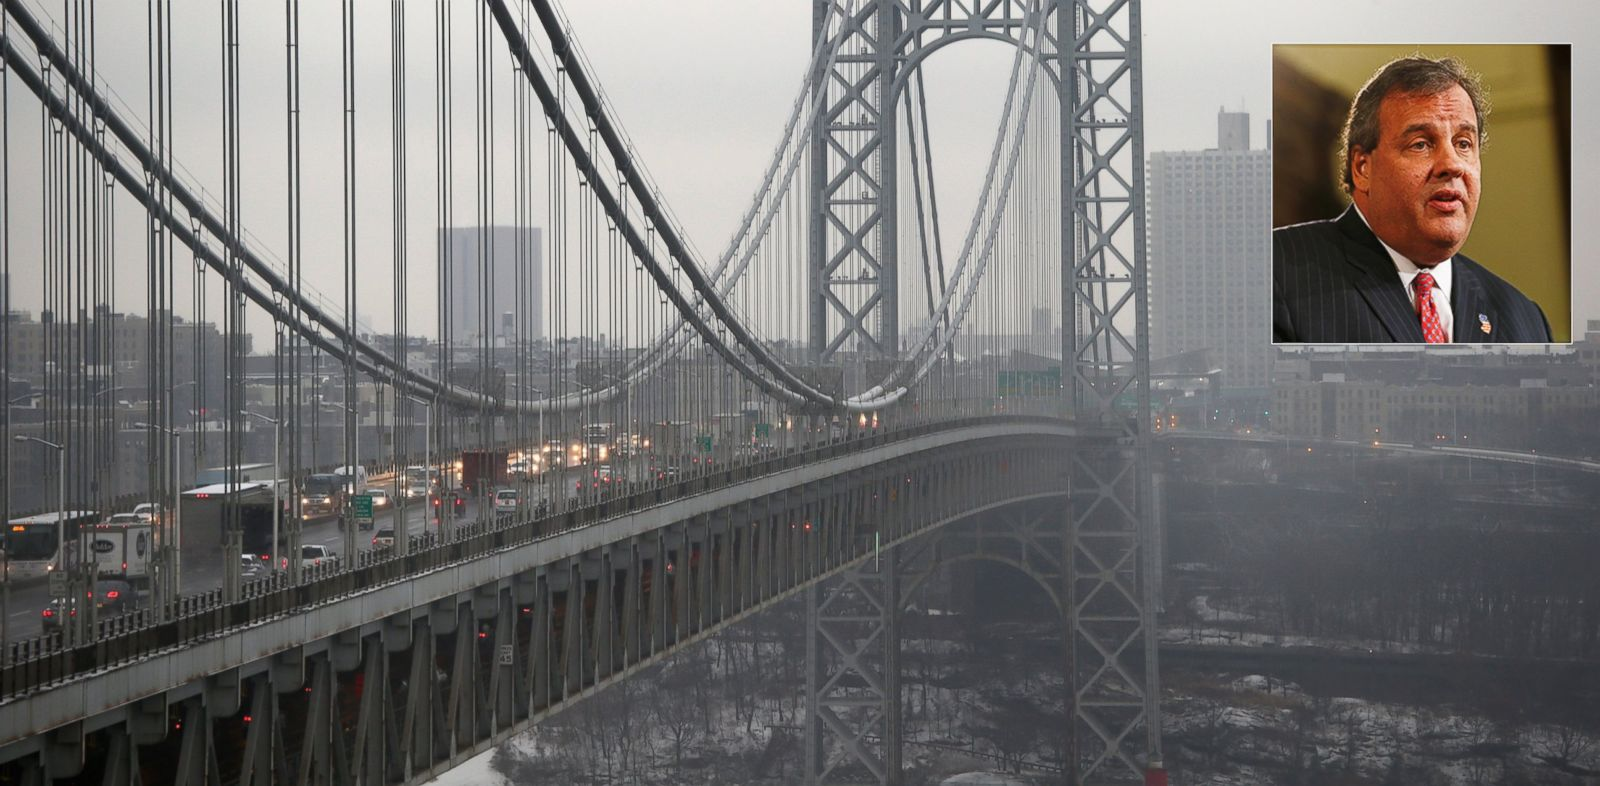 PHOTO: Traffic moves across the George Washington Bridge between New York City and New Jersey on Dec. 17, 2013. New Jerseys Governor Chris Christie, inset in a Jan. 9, 2014 file photo, has had to fend off allegations in a scandal involving the bridge.